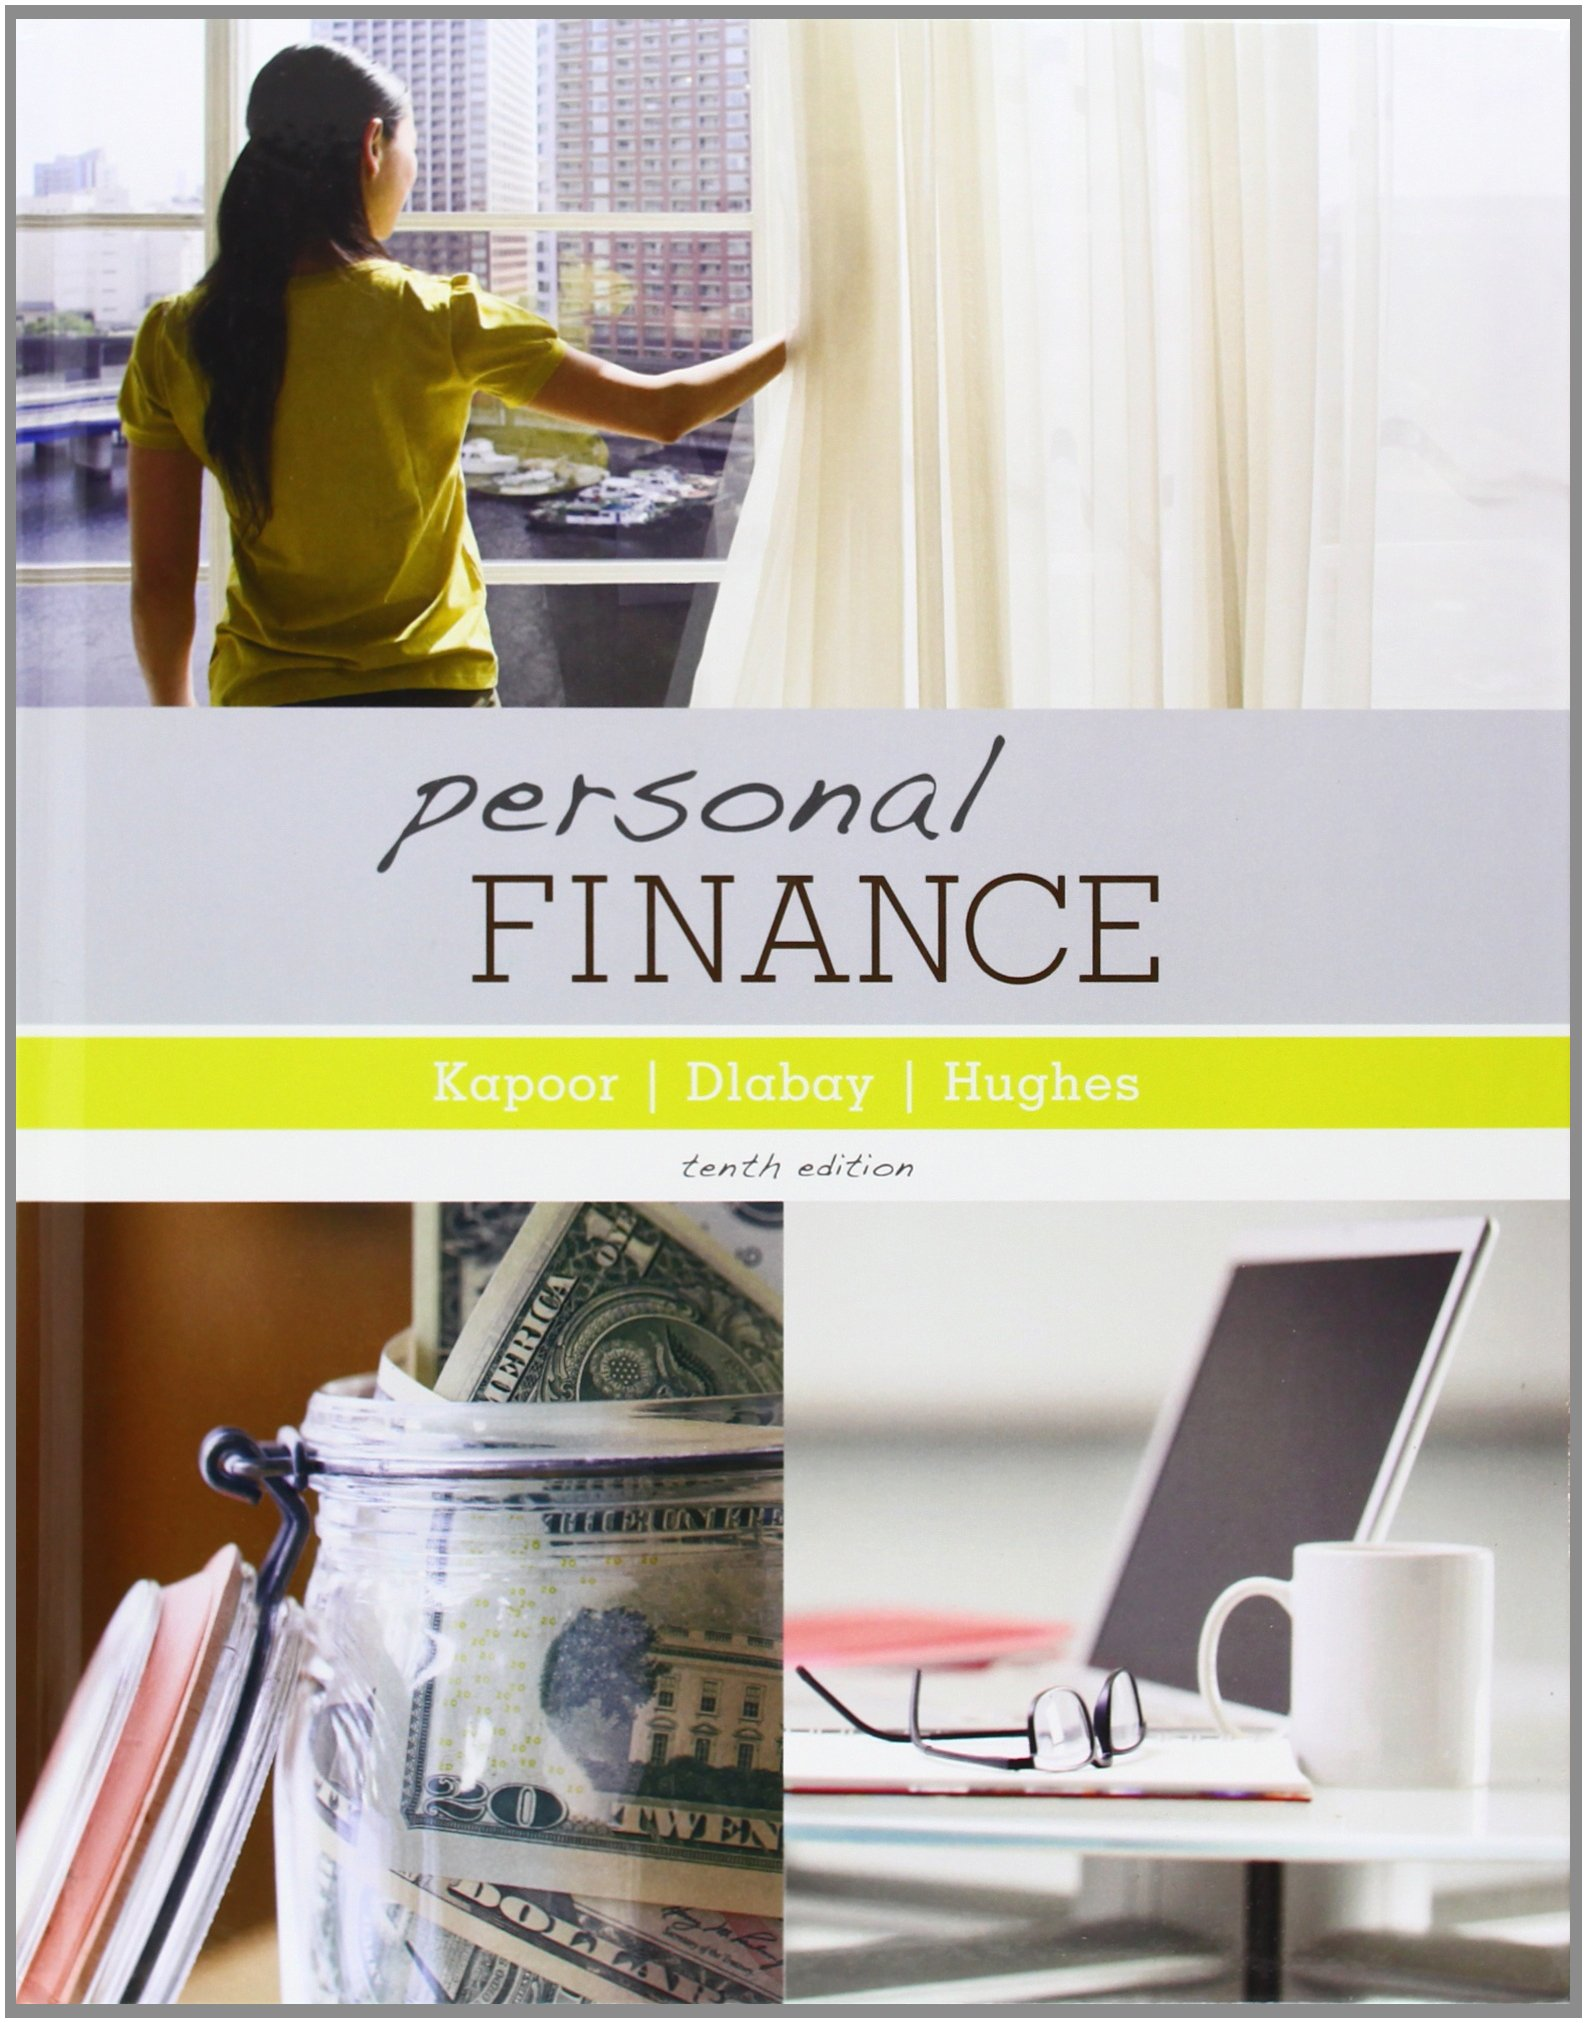 Personal Finance 10th Edition By Kapoor, Dlabay, Hughes - Solution Manual